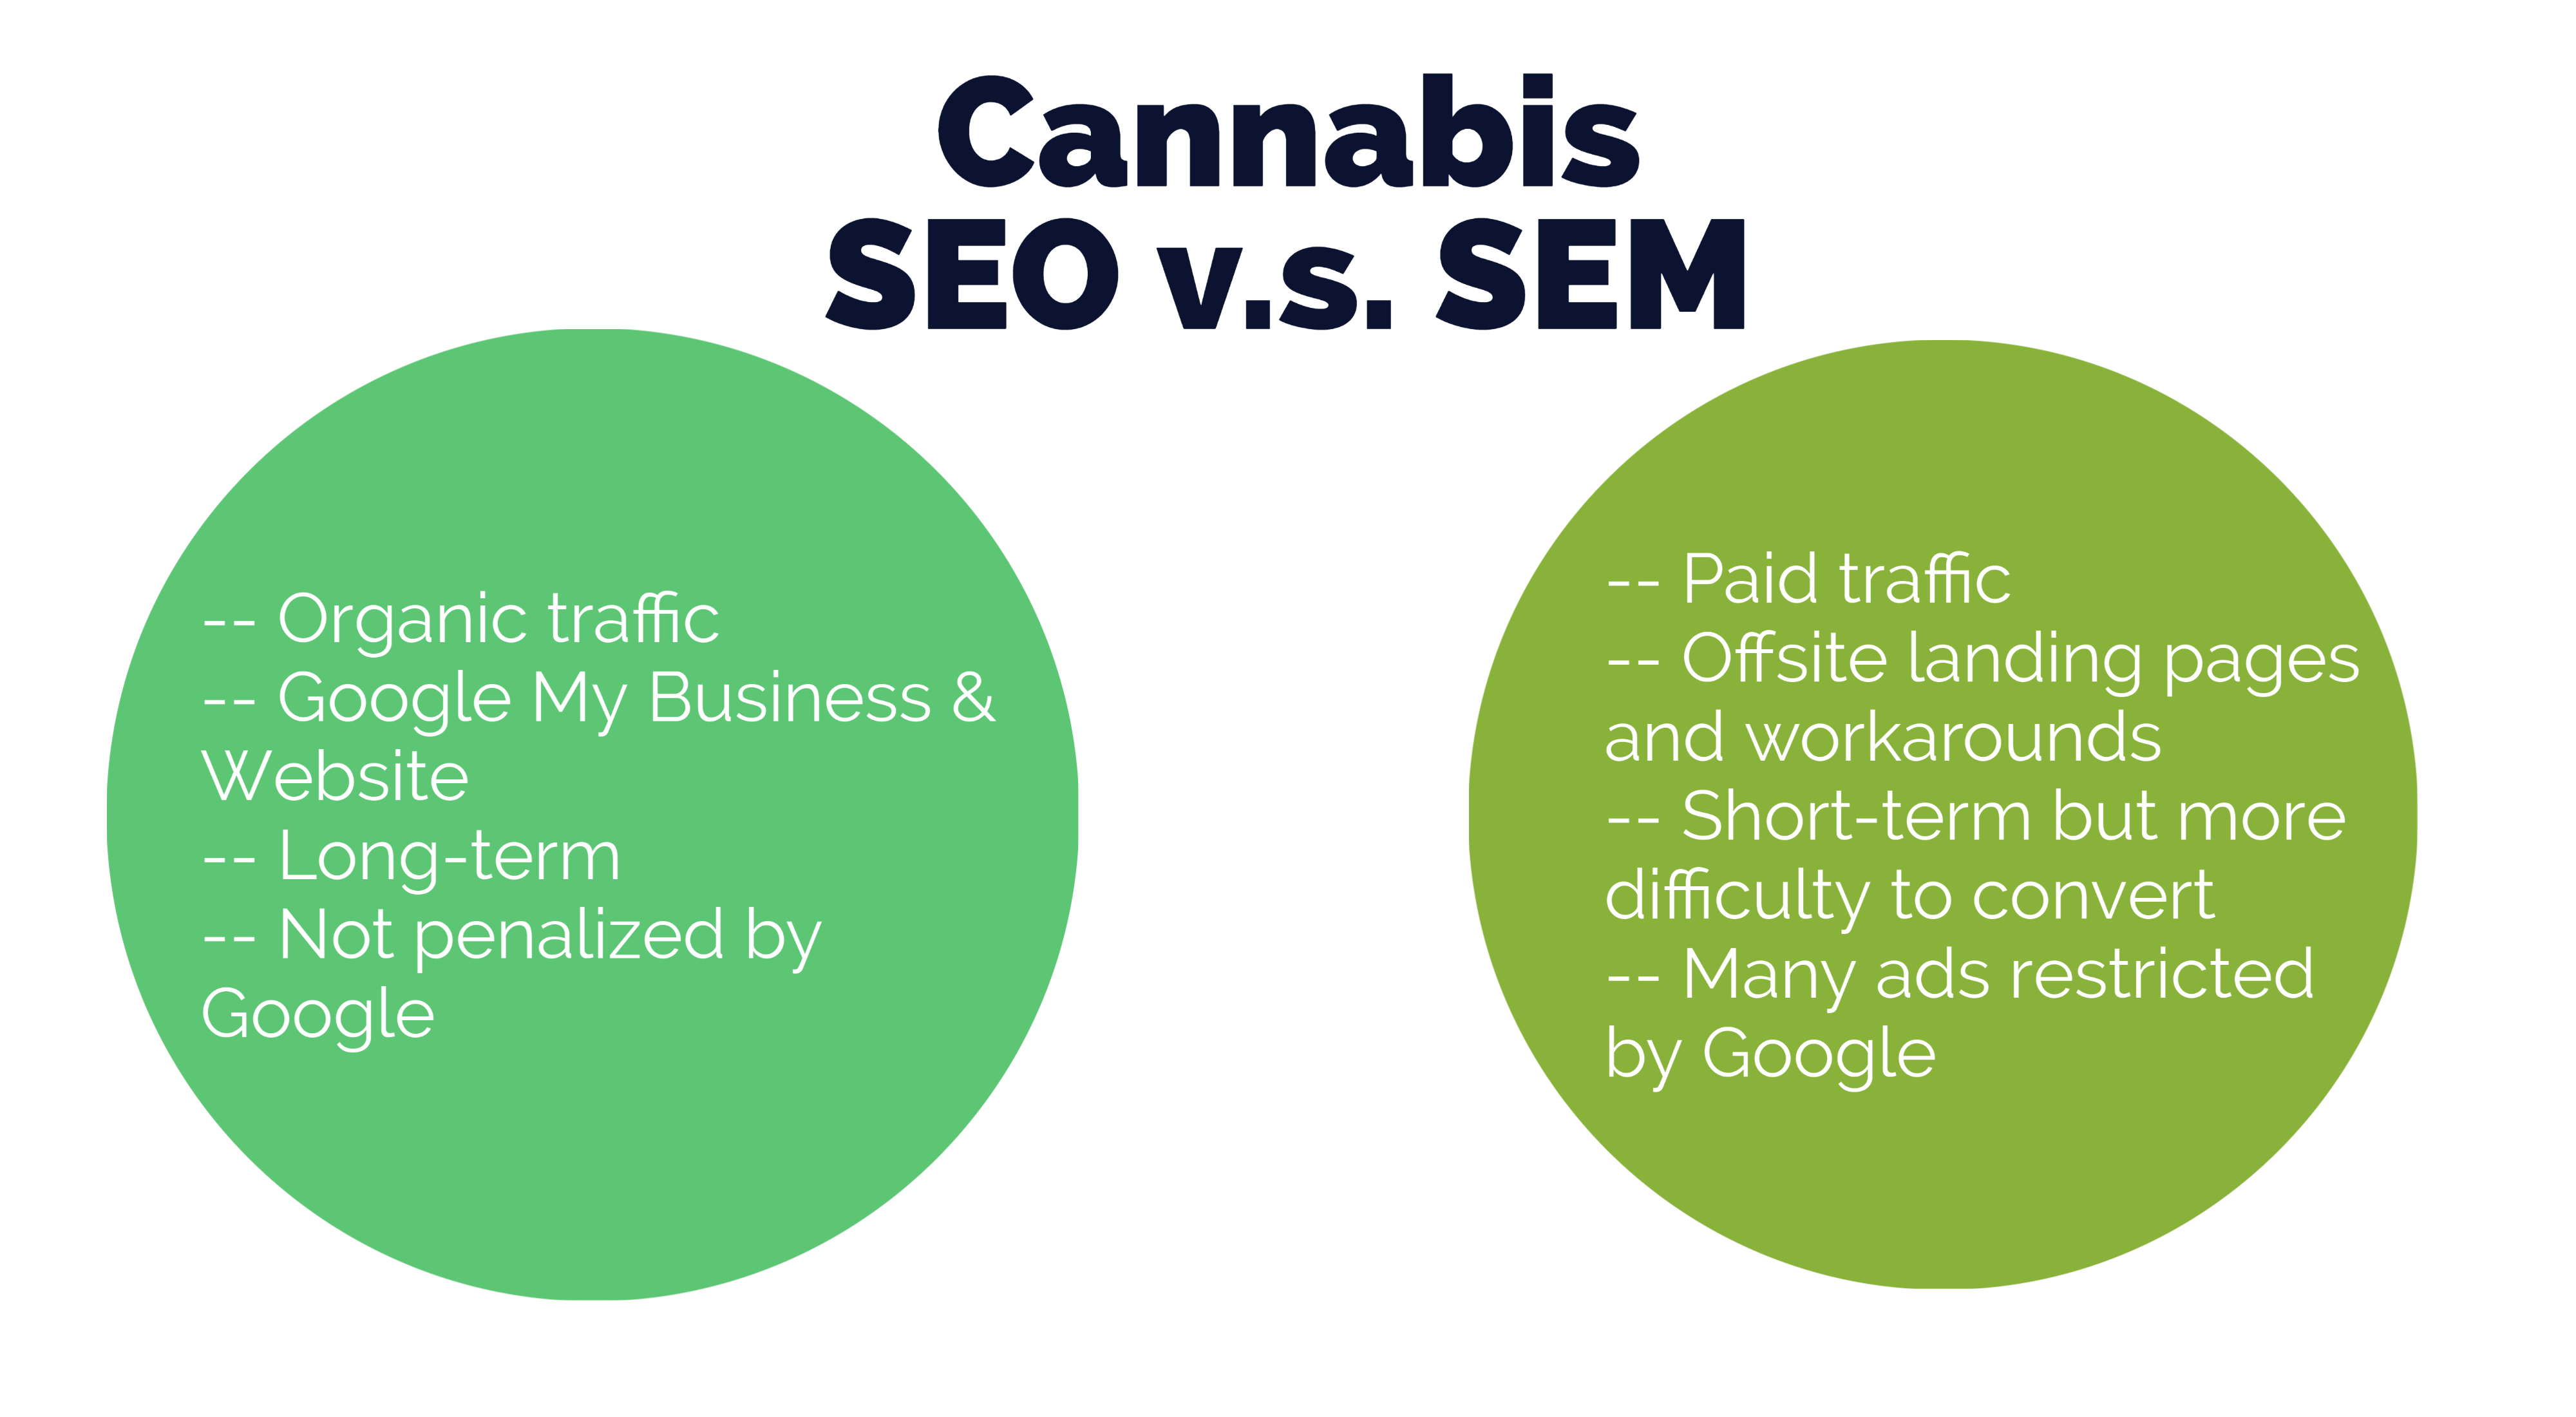 a graphic on Search Engine Optimization (SEO) vs Searn Engine Marketing (SEM) in the cannabis industry